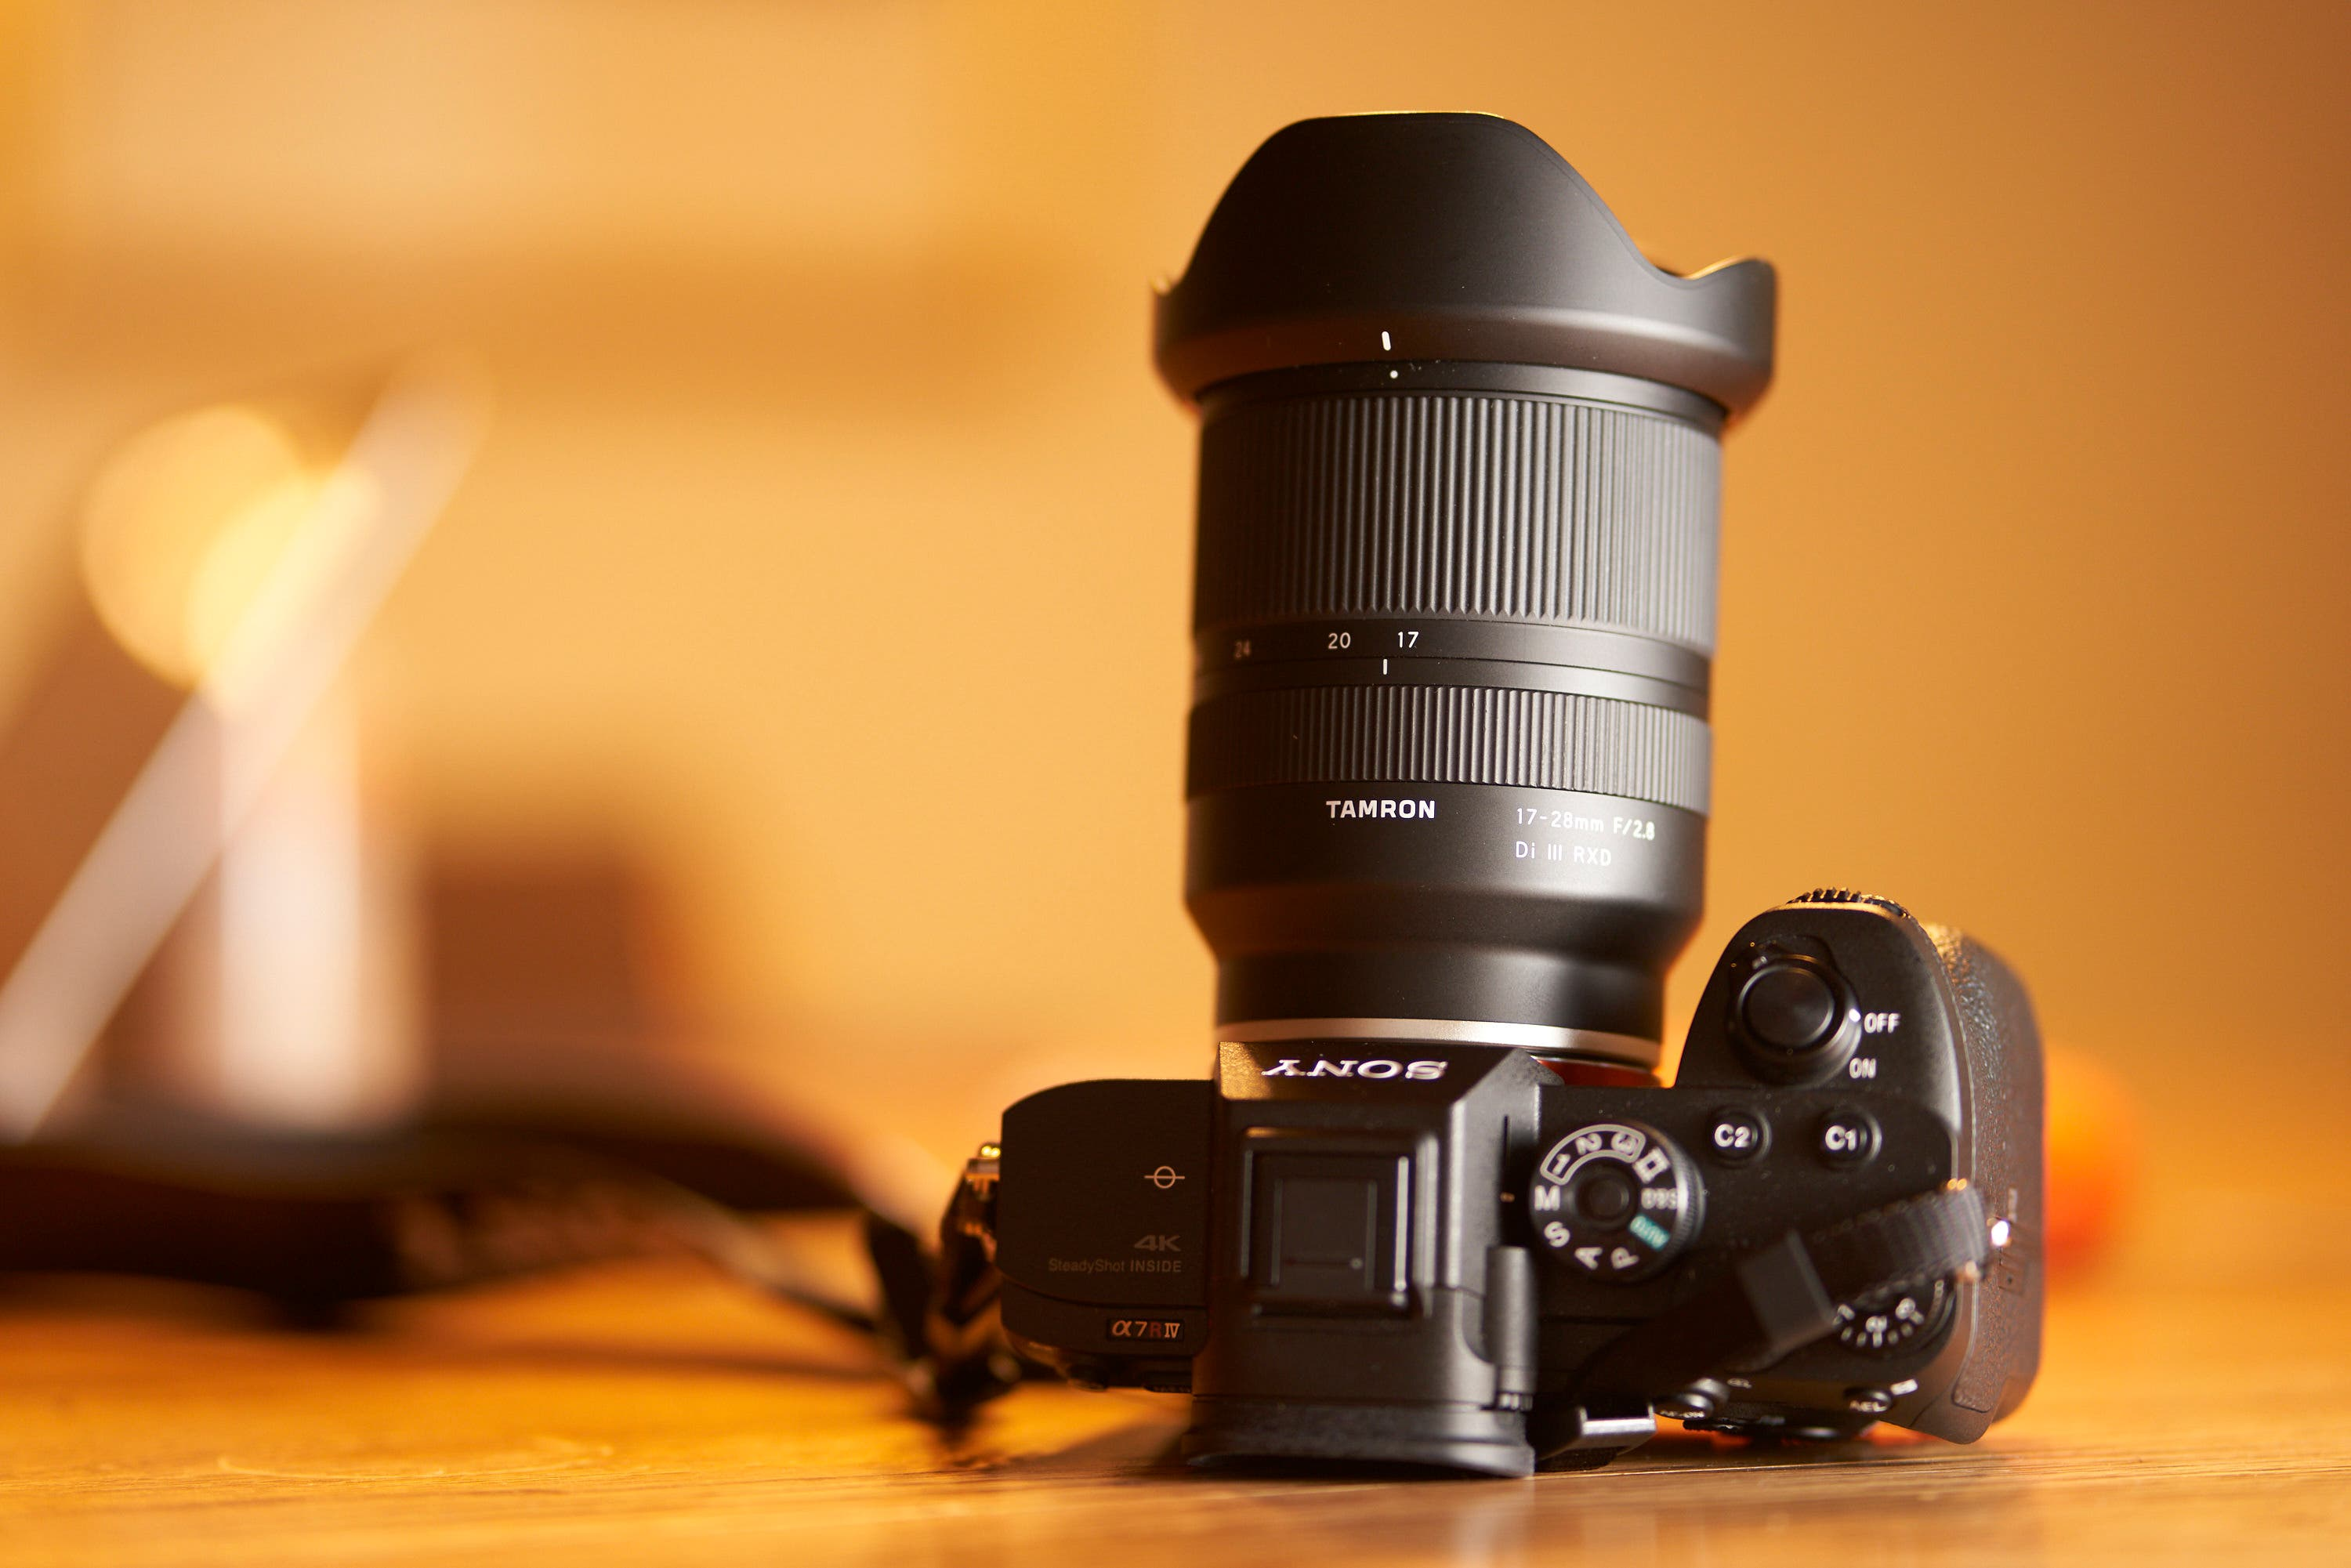 Want Vivid Colors? These Tamron Lenses are the Best Way to Get It